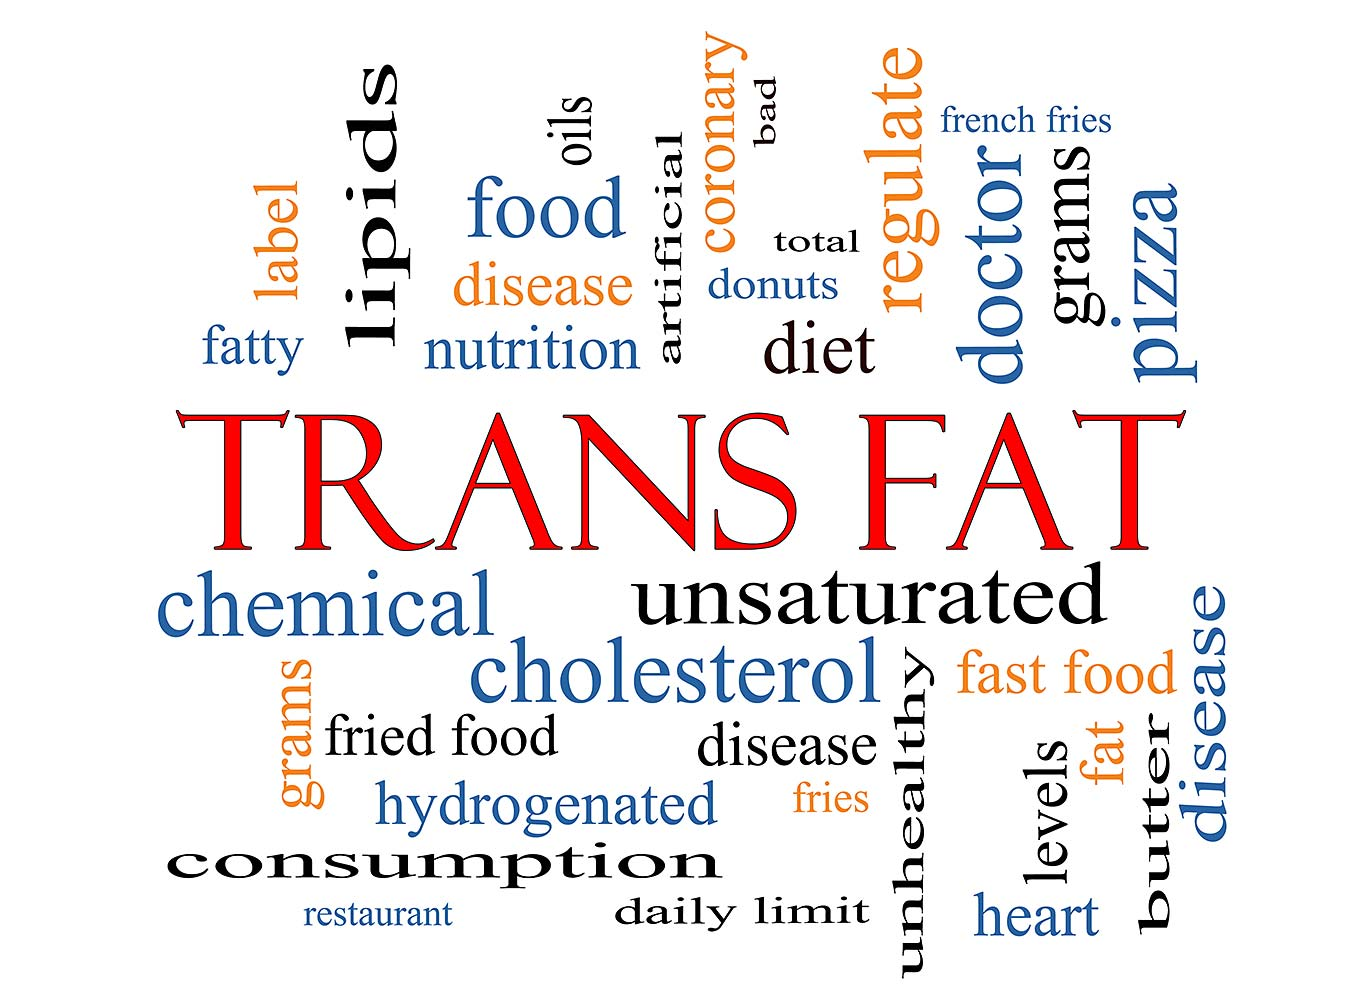 Why Are Trans Fats Bad For You?